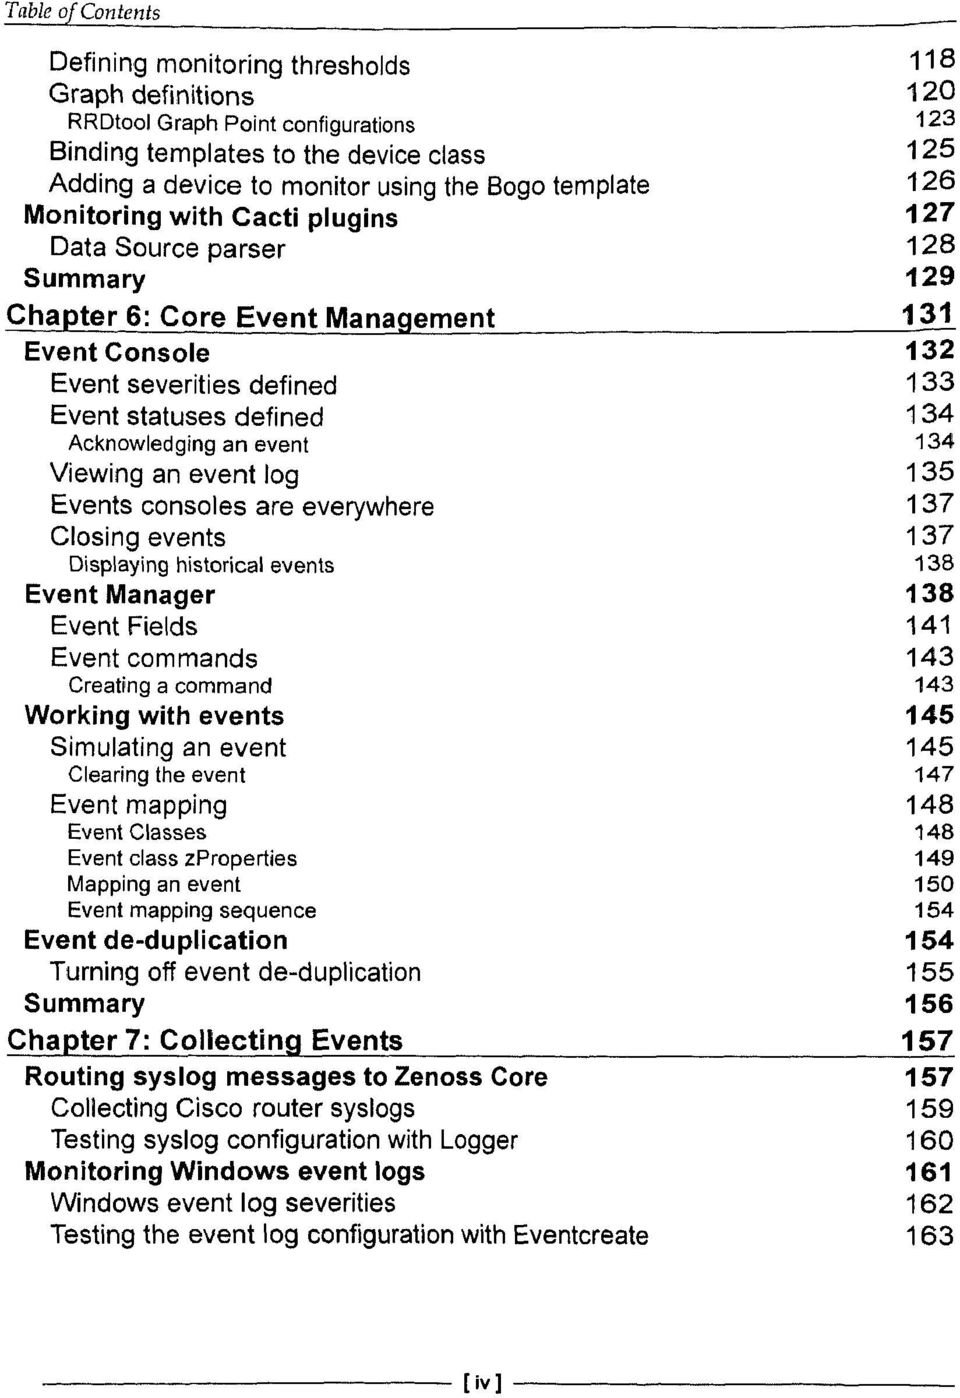 Event Console 132 Event severities defined 133 Event statuses defined 134 Acknowledging an event 134 Viewing an event log 135 Events consoles are everywhere 137 Closing events 137 Displaying